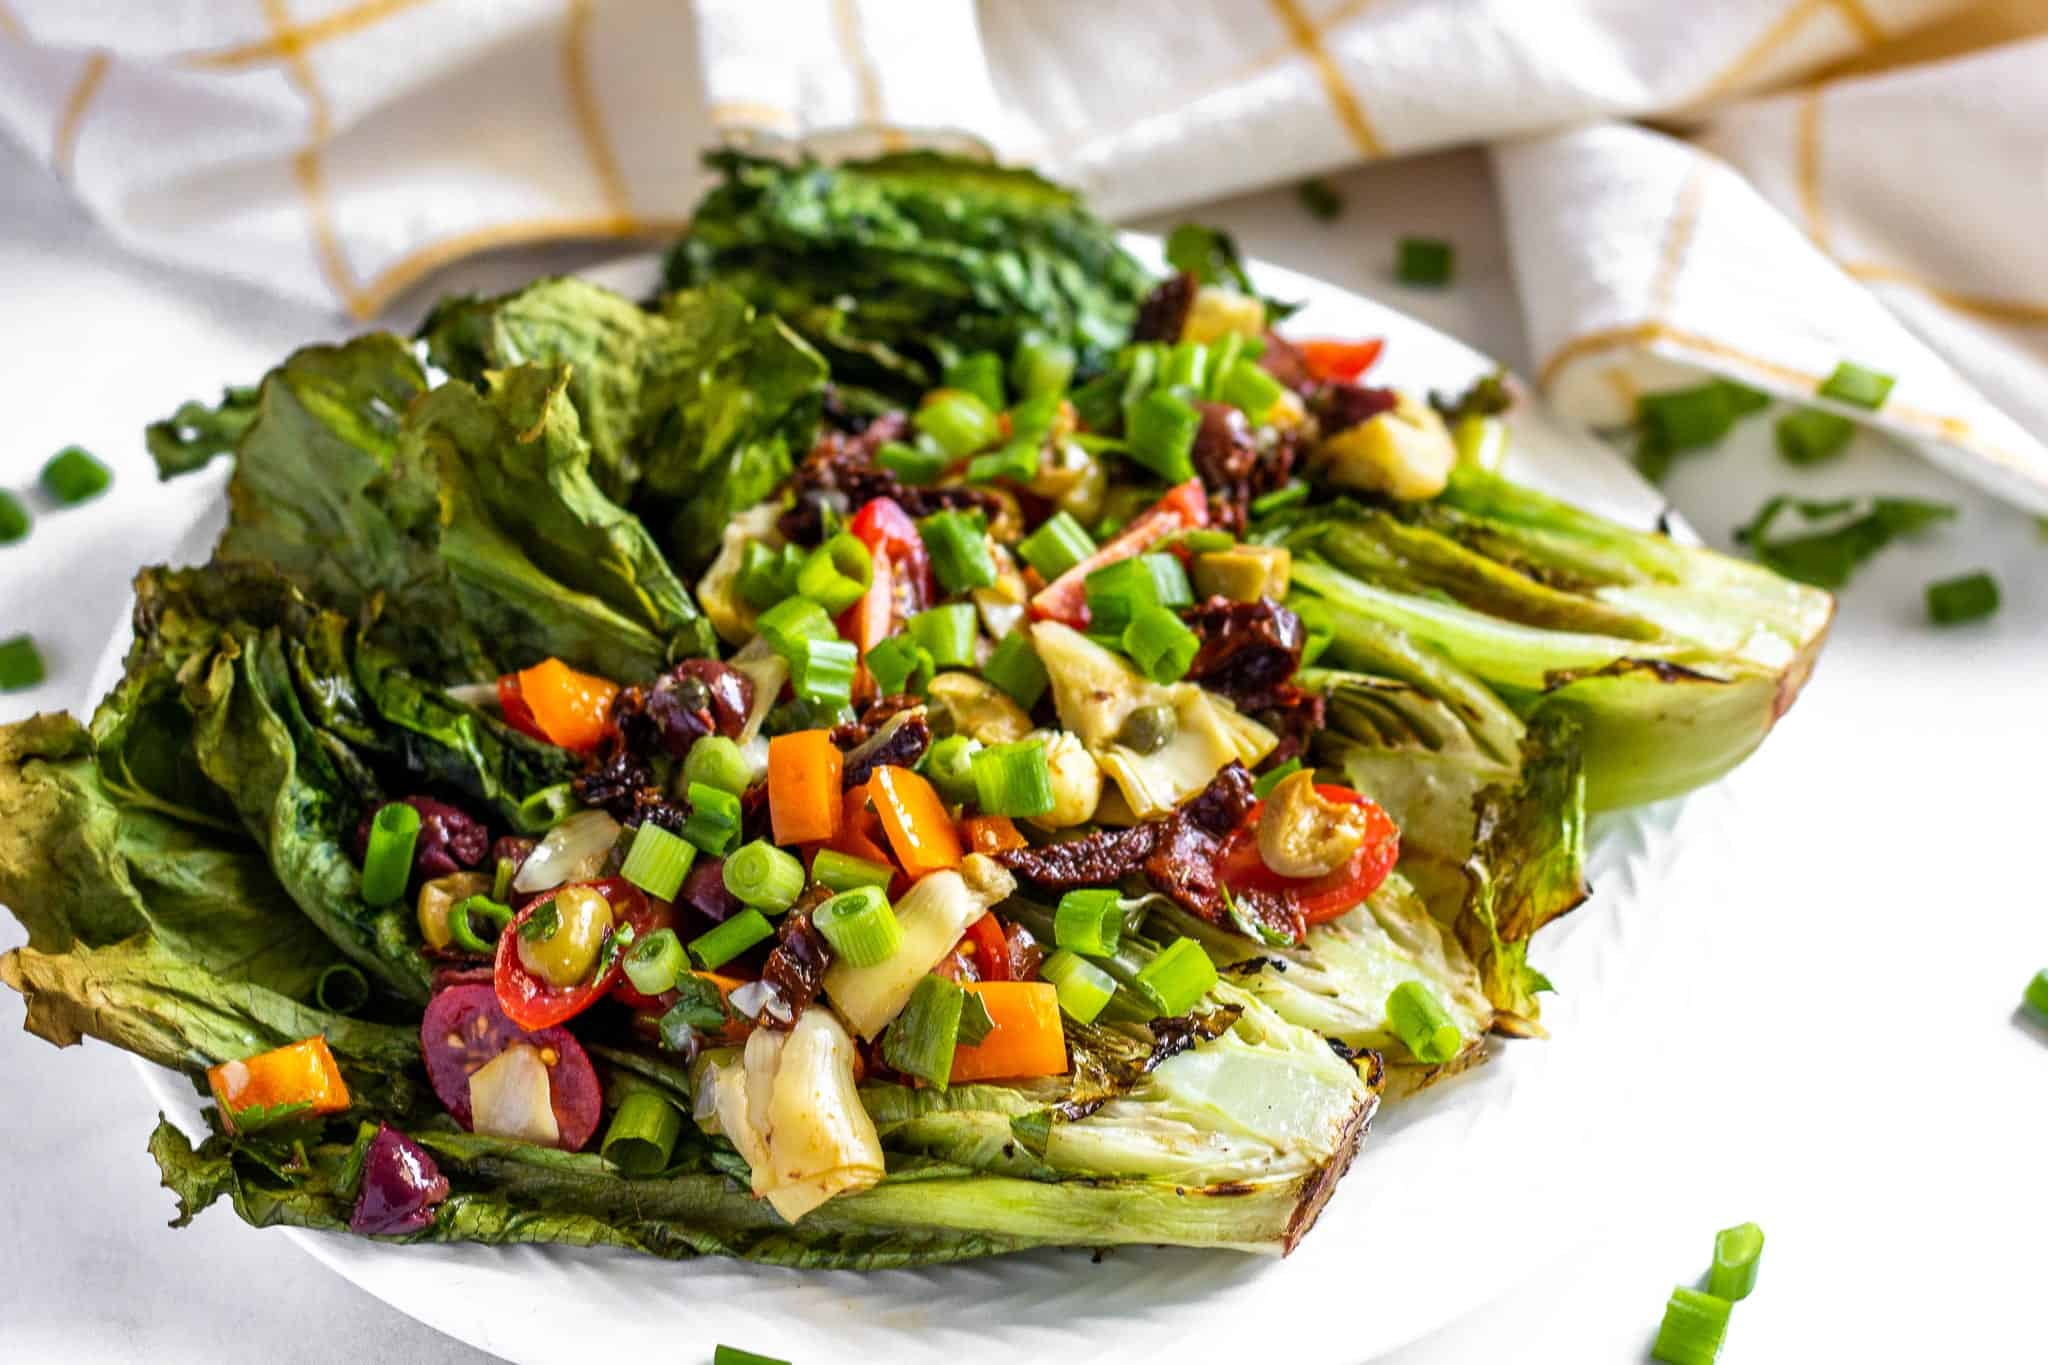 Grilled Romaine Greek Salad #lowfodmap #glutenfree #dairyfree #saladrecipe